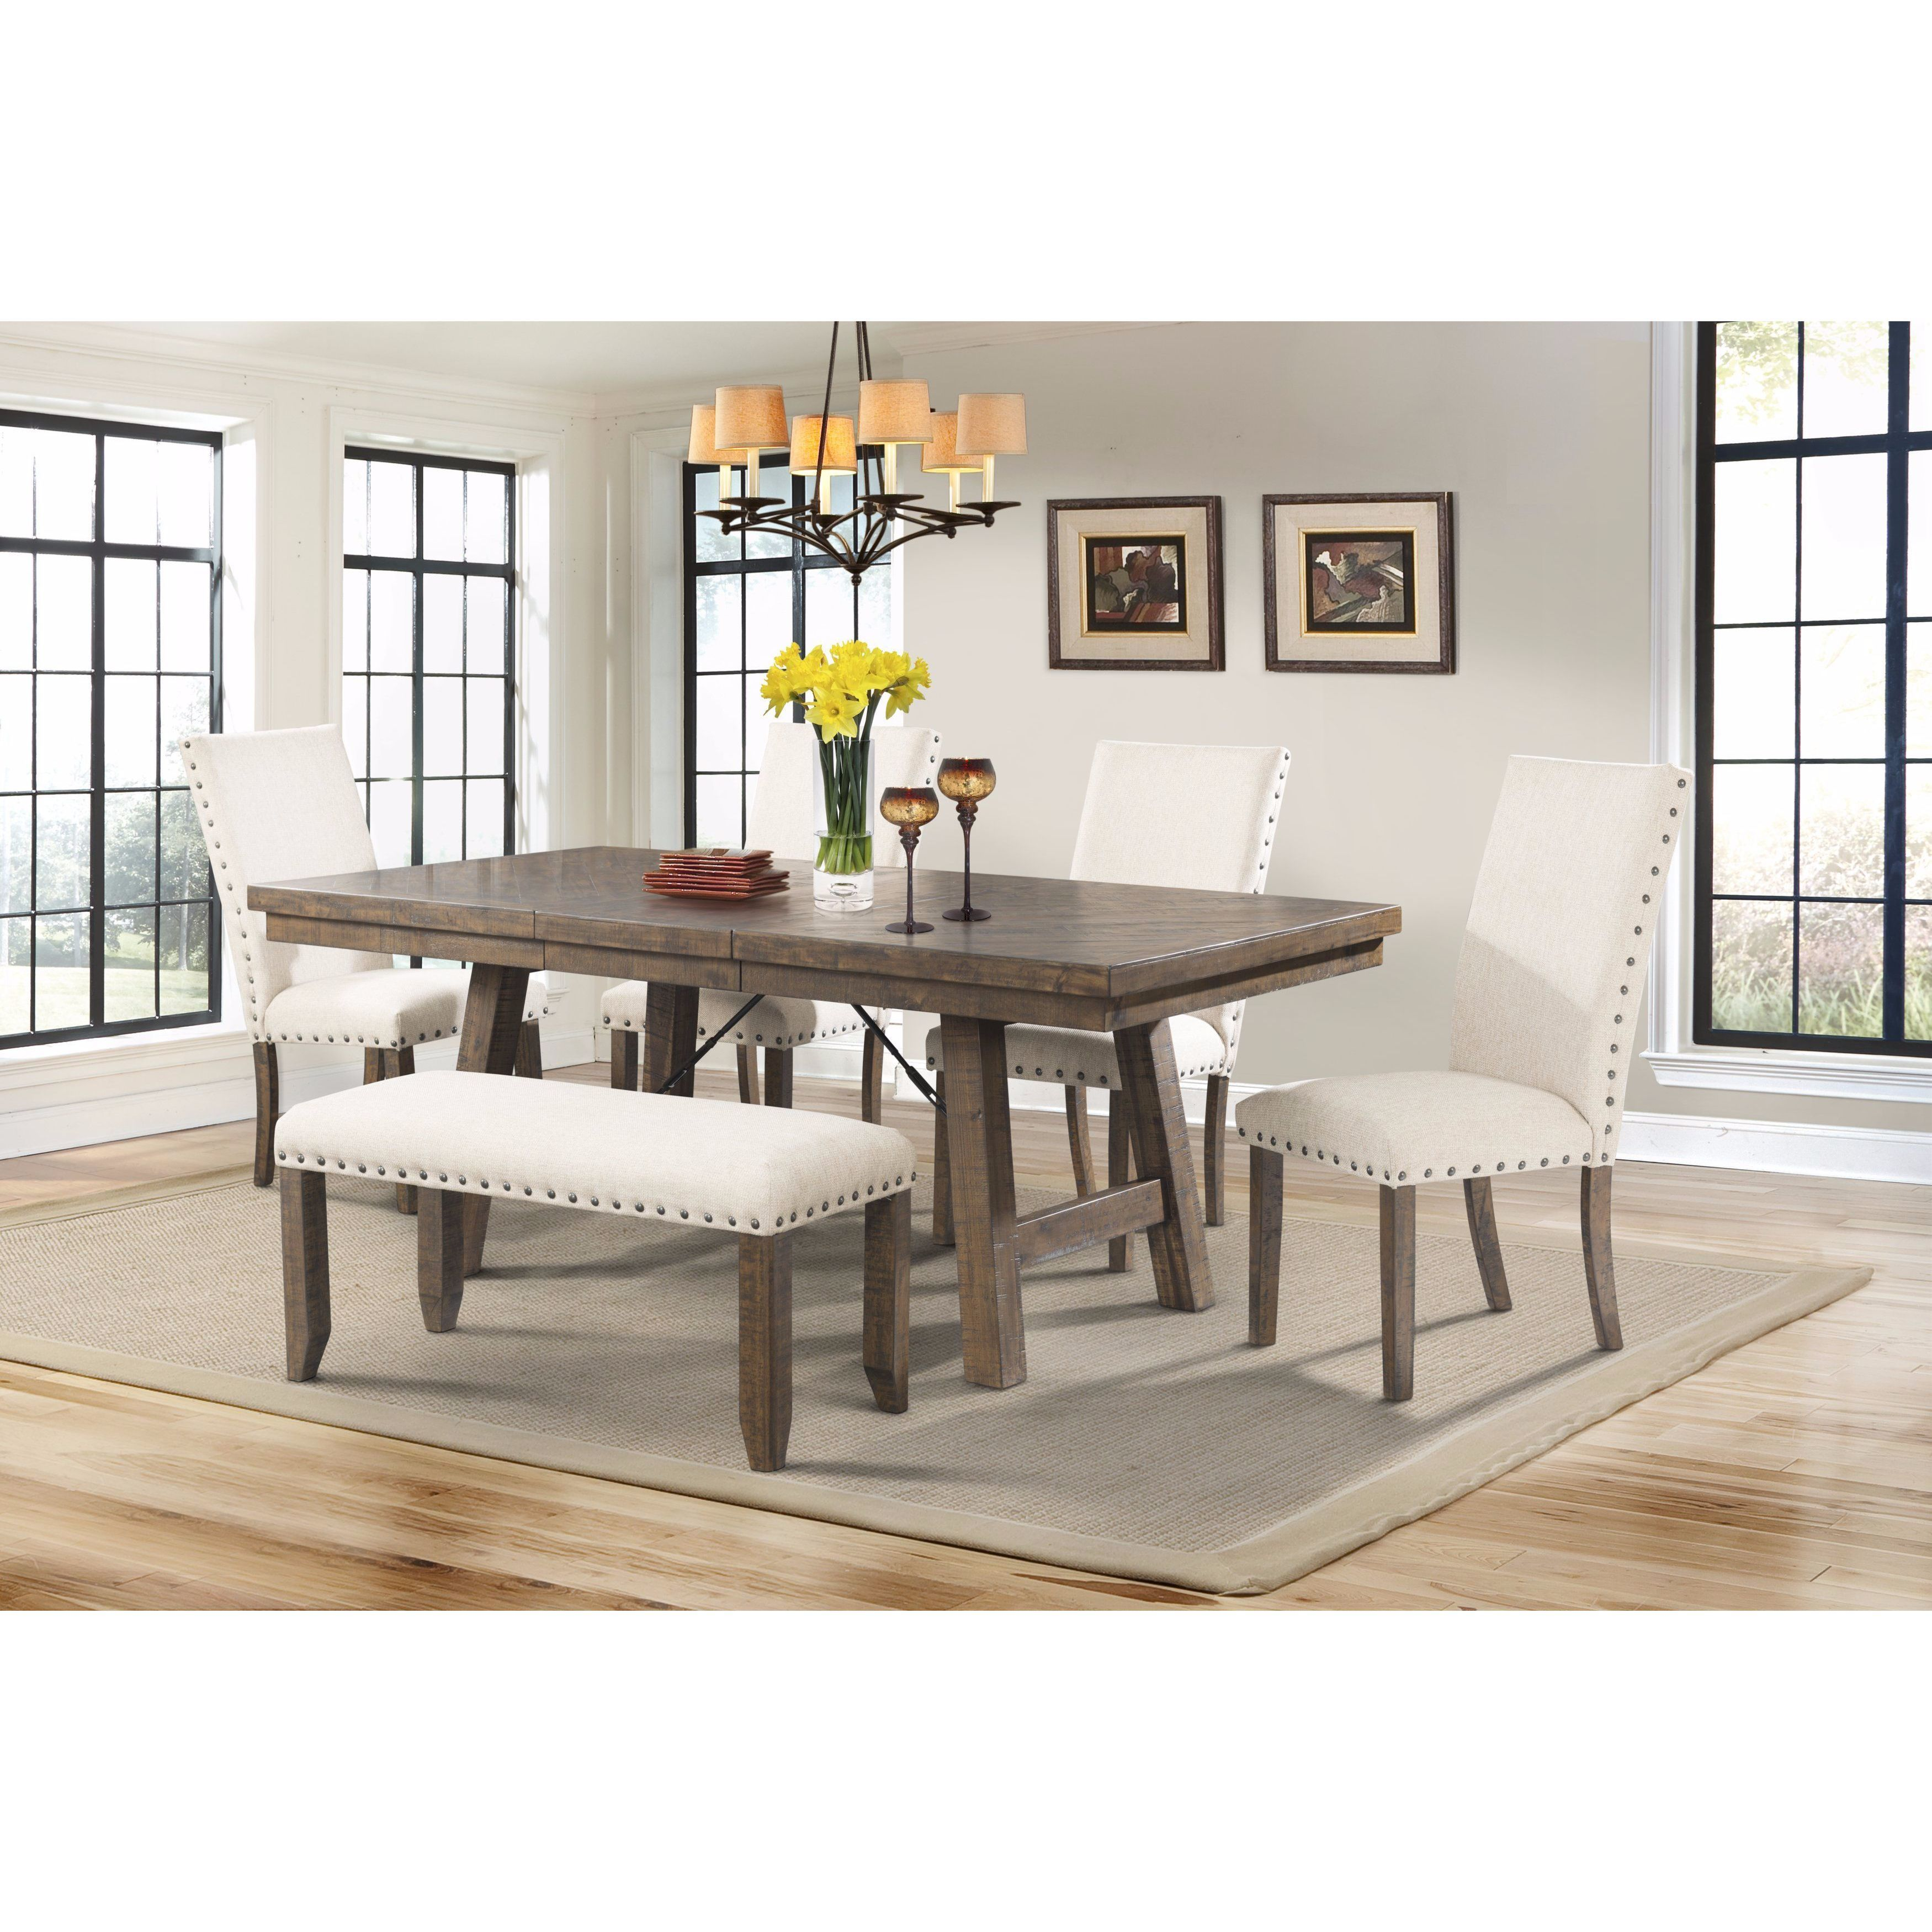 Details About Picket House Dex 6 Piece Dining Table And Chairs Set Brown Sets